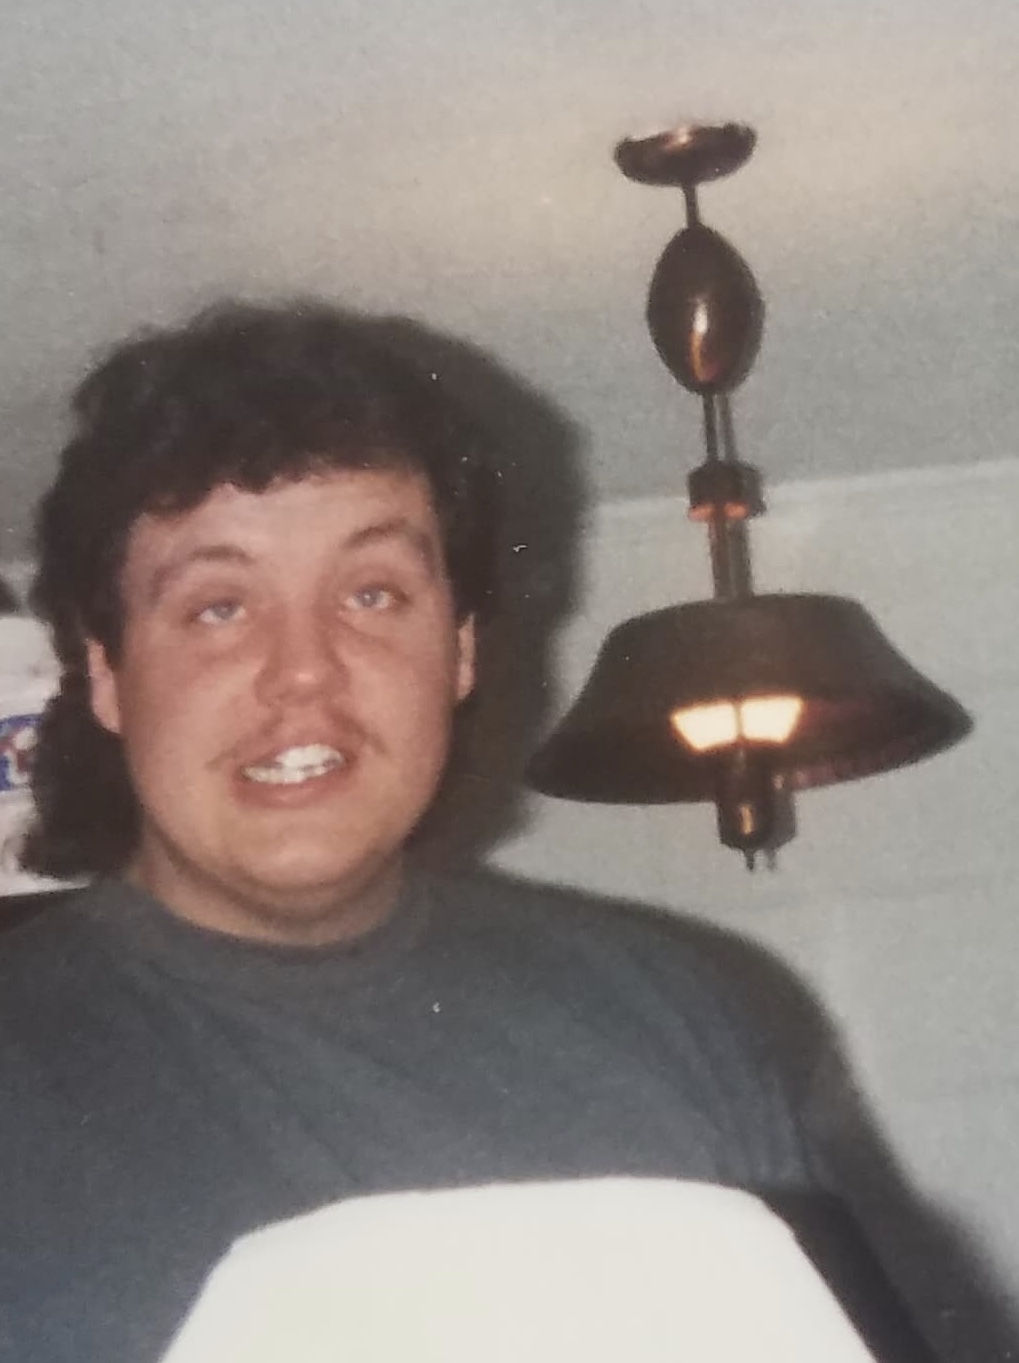 Back when Jason was 23 lol When he was asked to smile and gave goofy  smile.